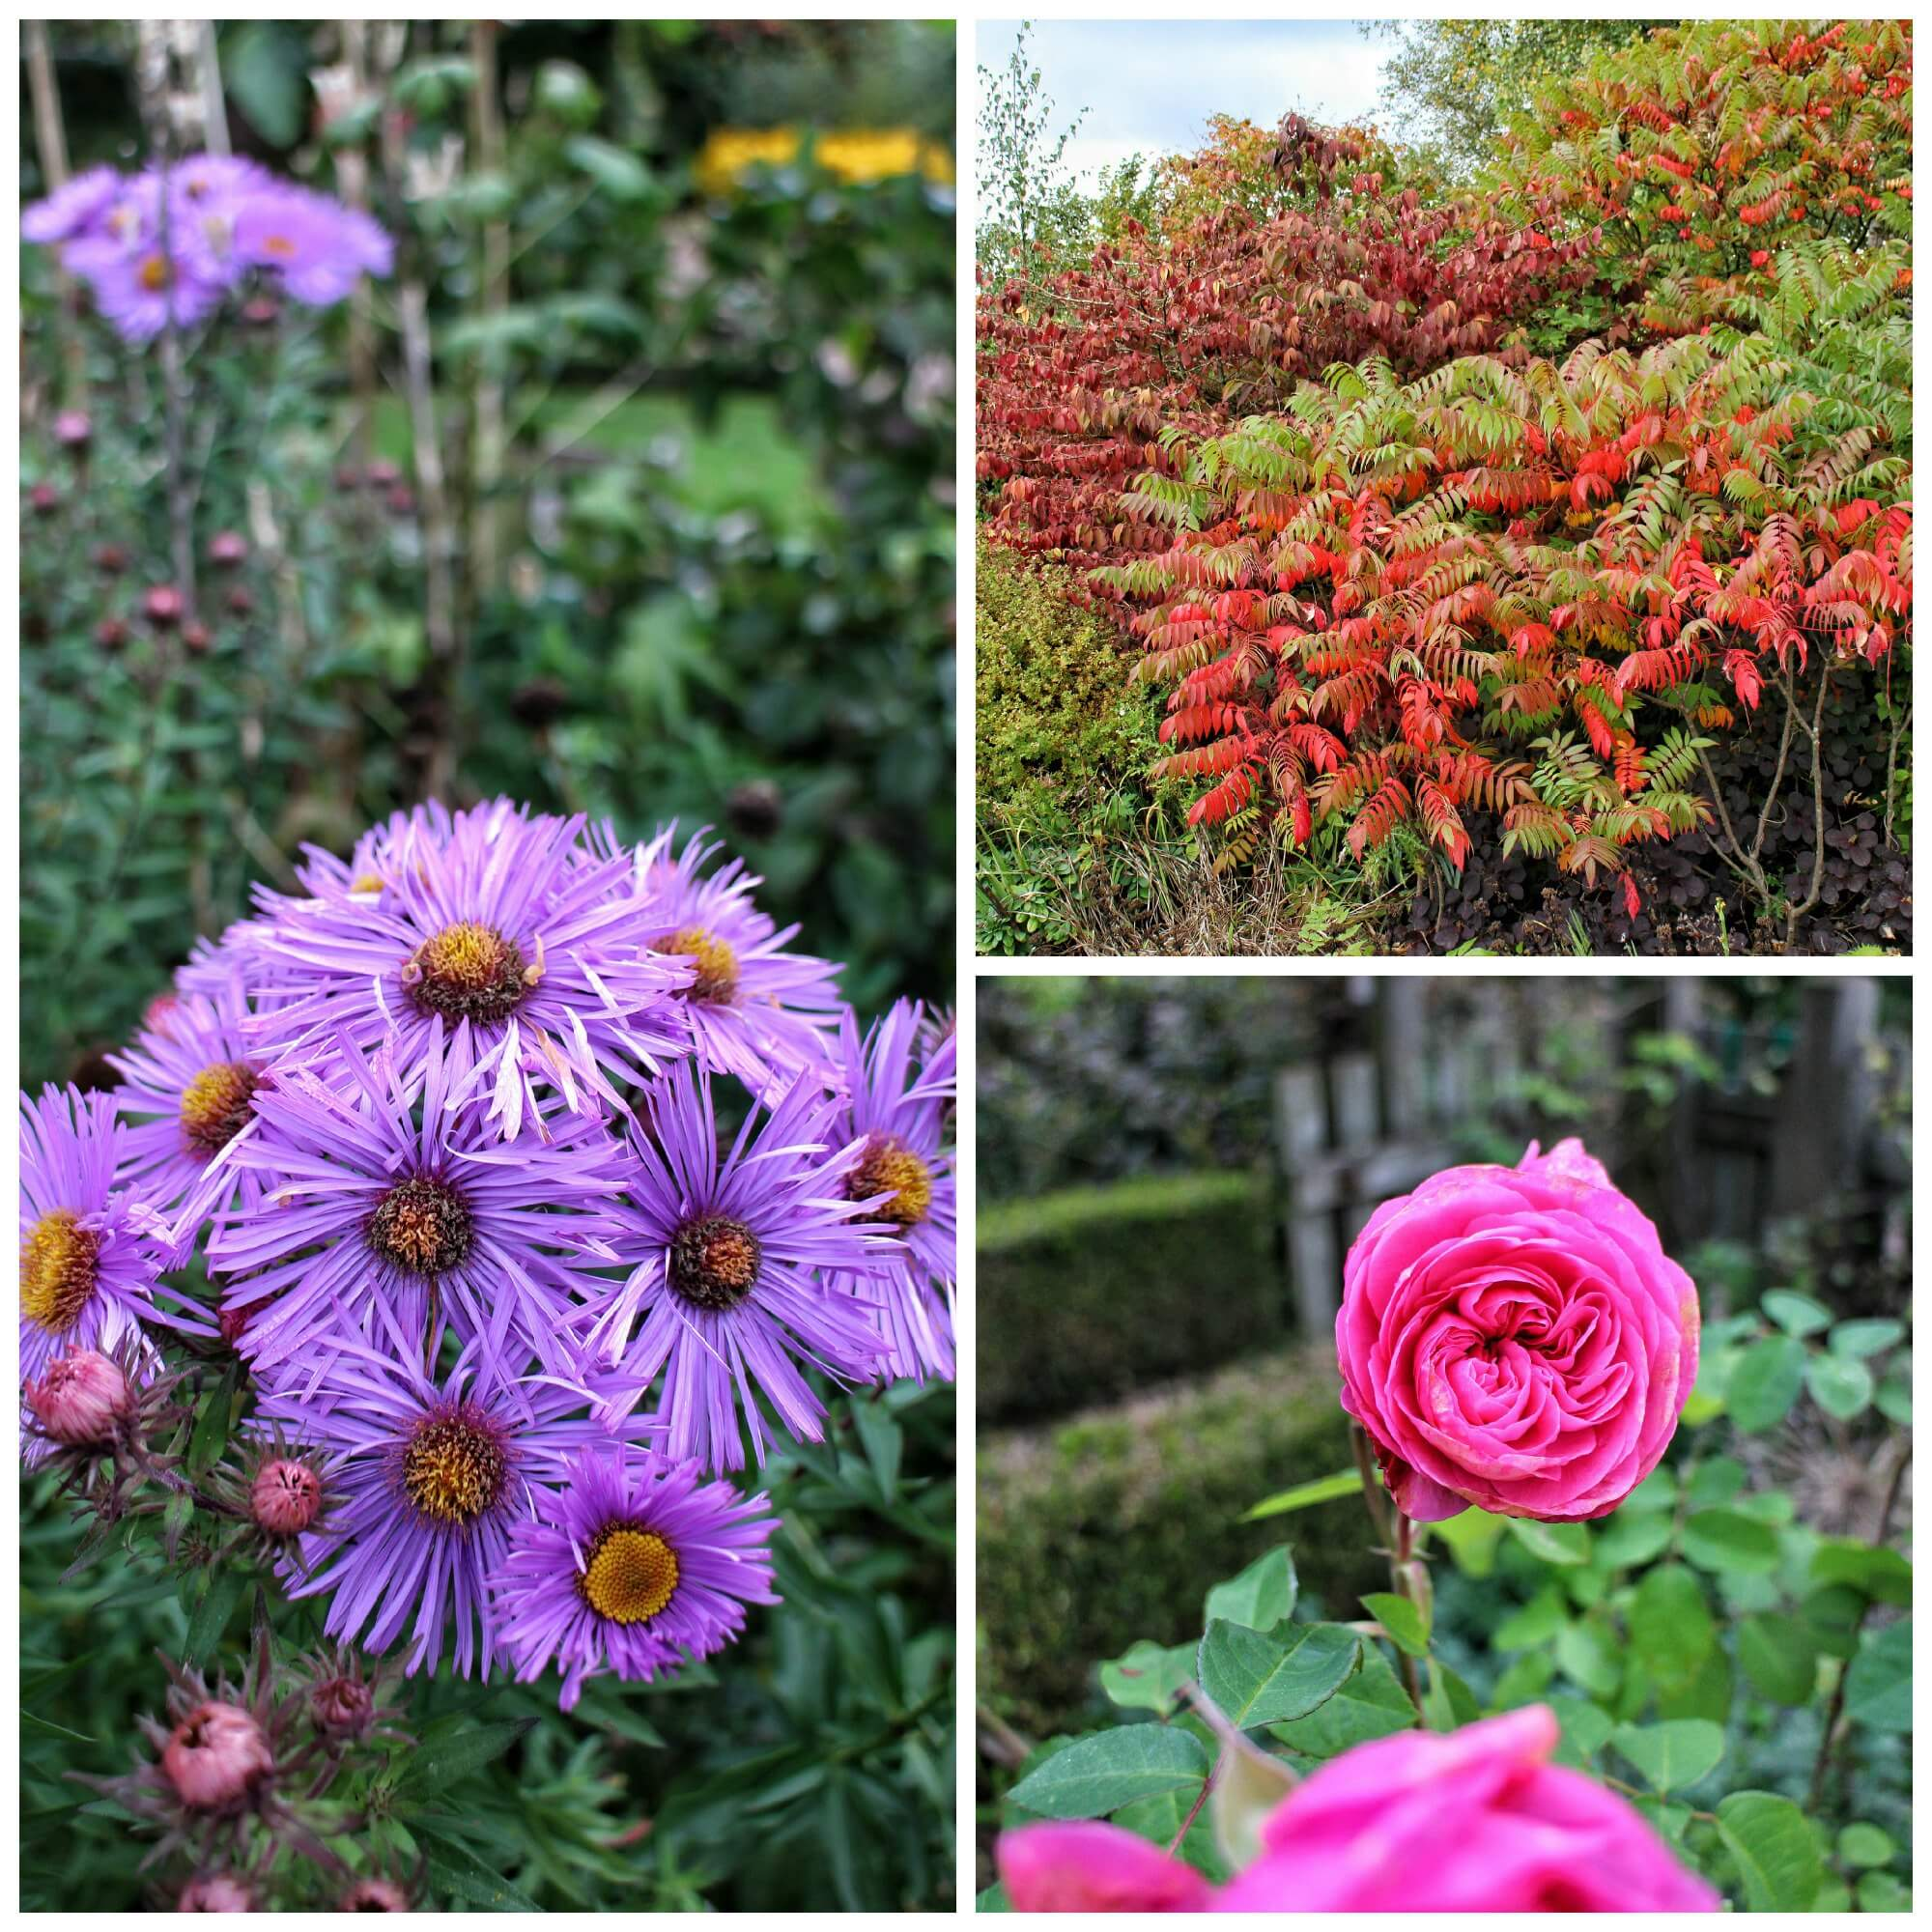 I'd love to go back in Spring and Summer to see how the gardens change through the seasons